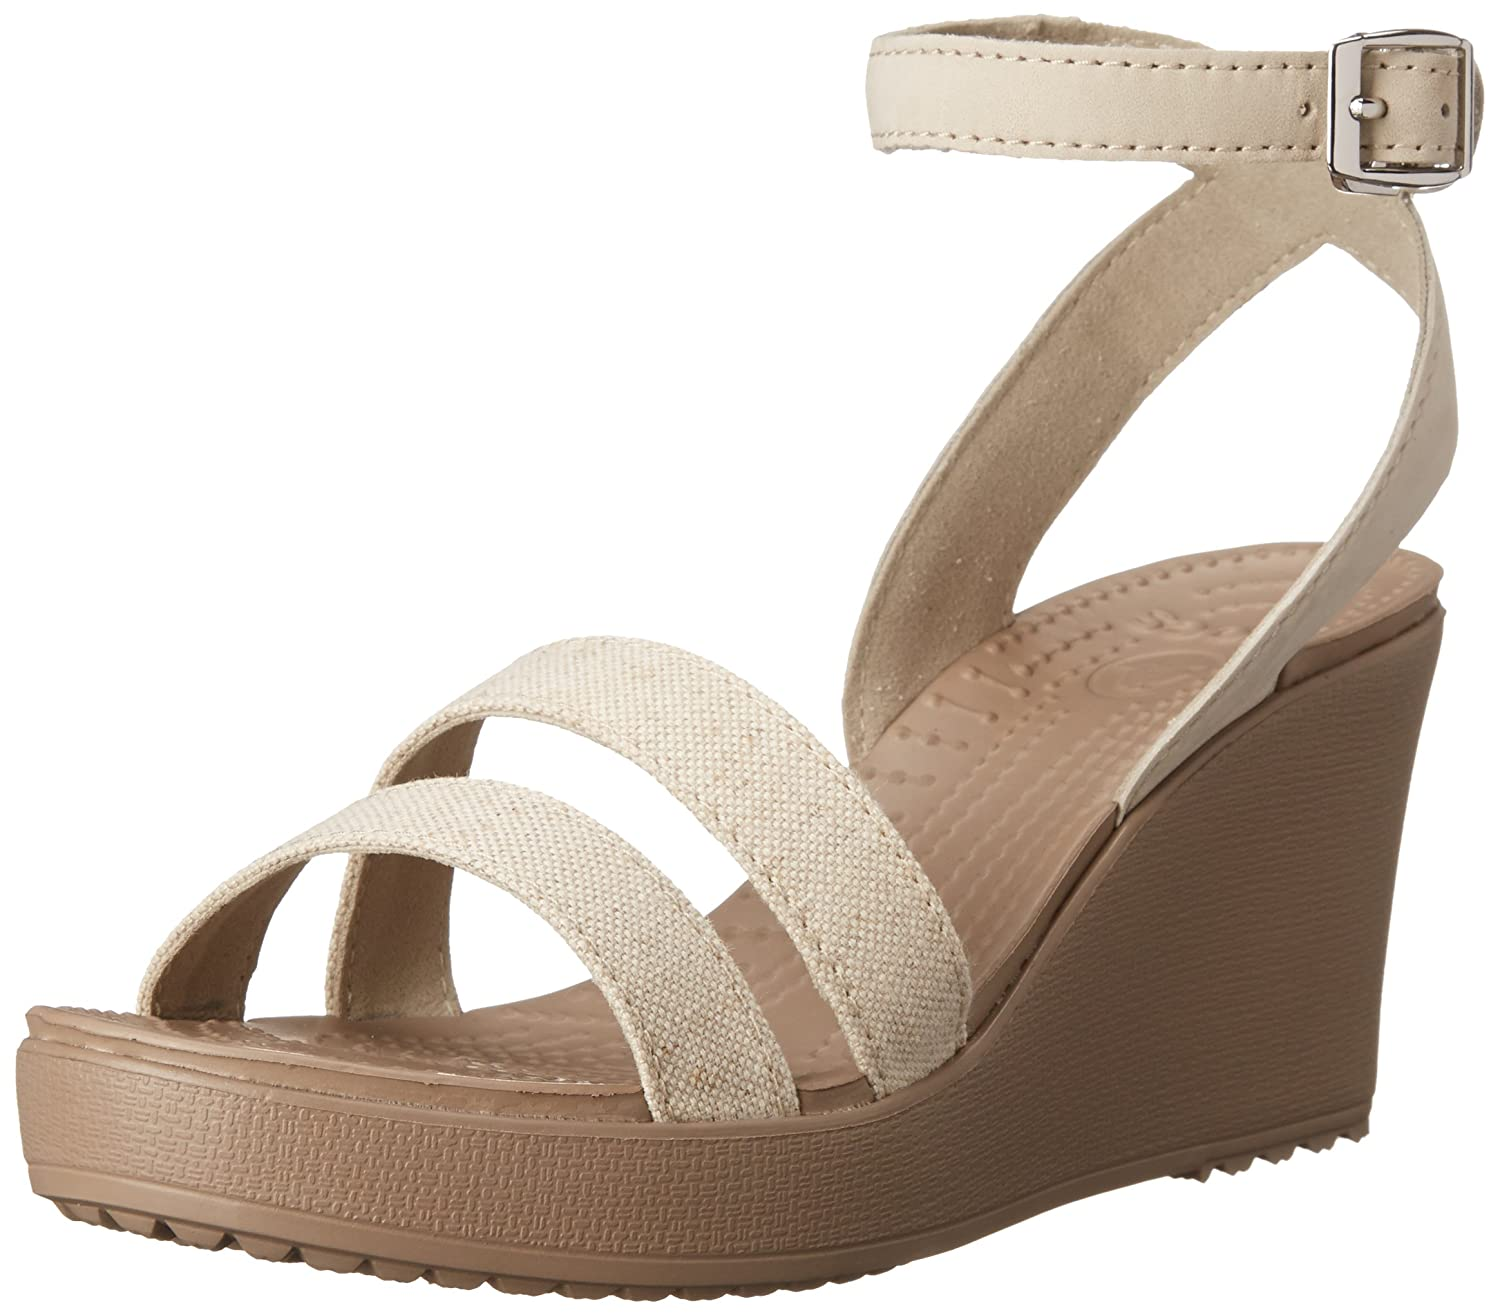 Crocs Leigh Wedge, 14413 Sandales Beige Sandales Femme Beige (Oatmeal/Mushroom) ae49393 - fast-weightloss-diet.space